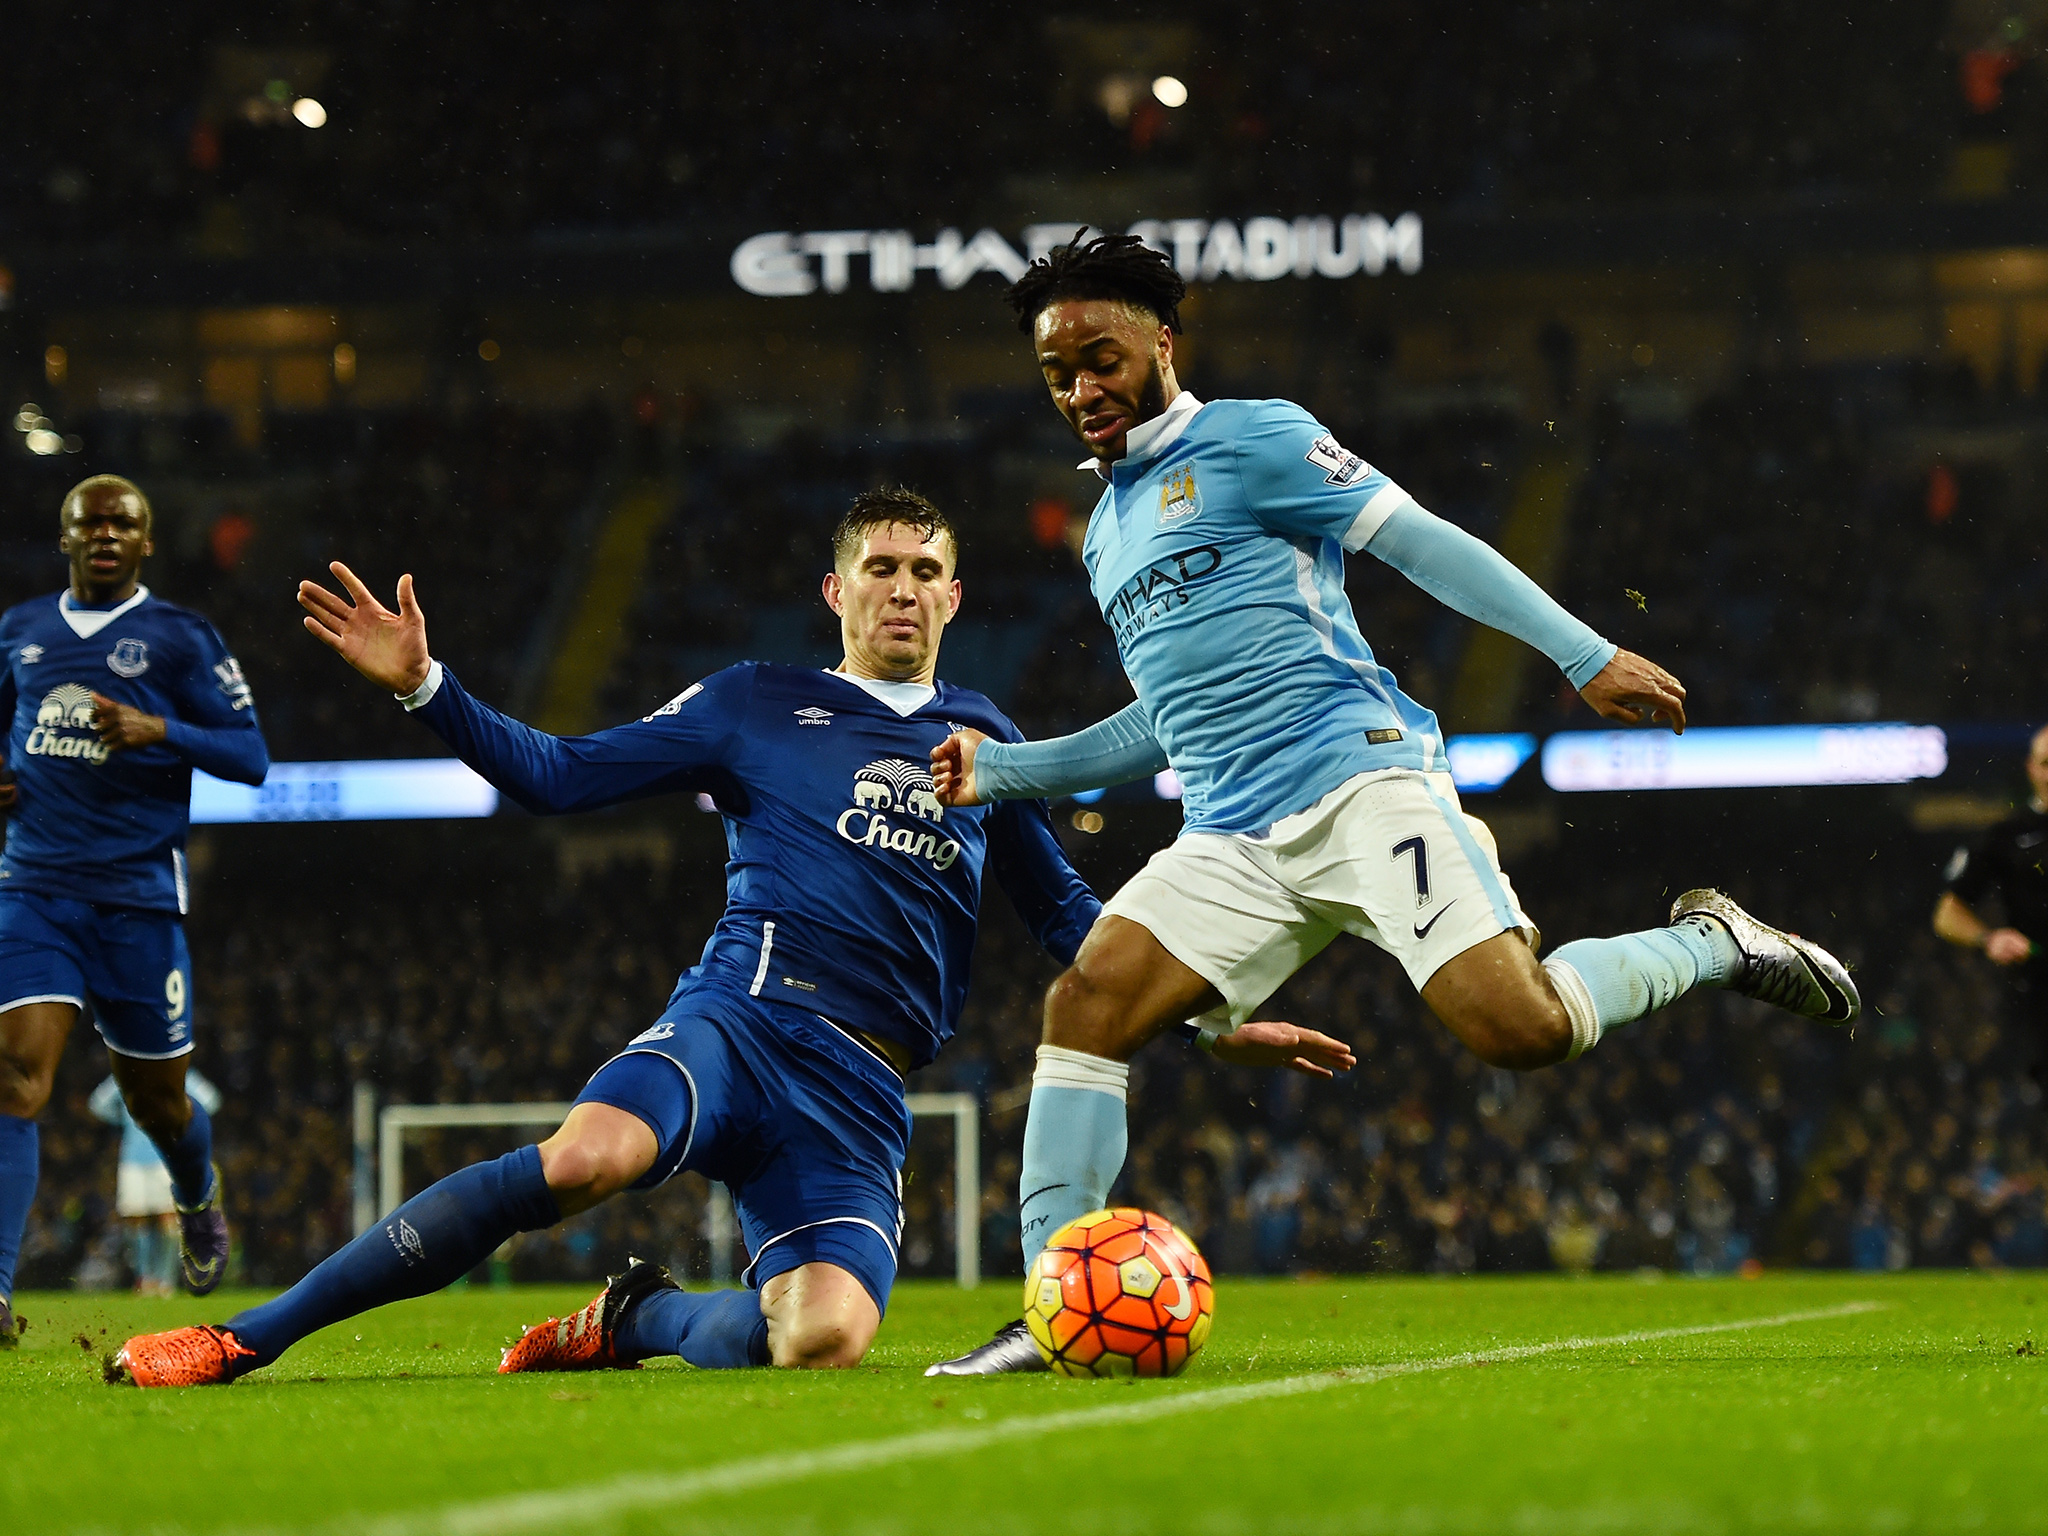 Stones' stonewall scandal - Referee Roger East was the only man in the world who didn't believe Raheem Sterling should have had a penalty when fouled by Everton's John Stones at the Etihad.